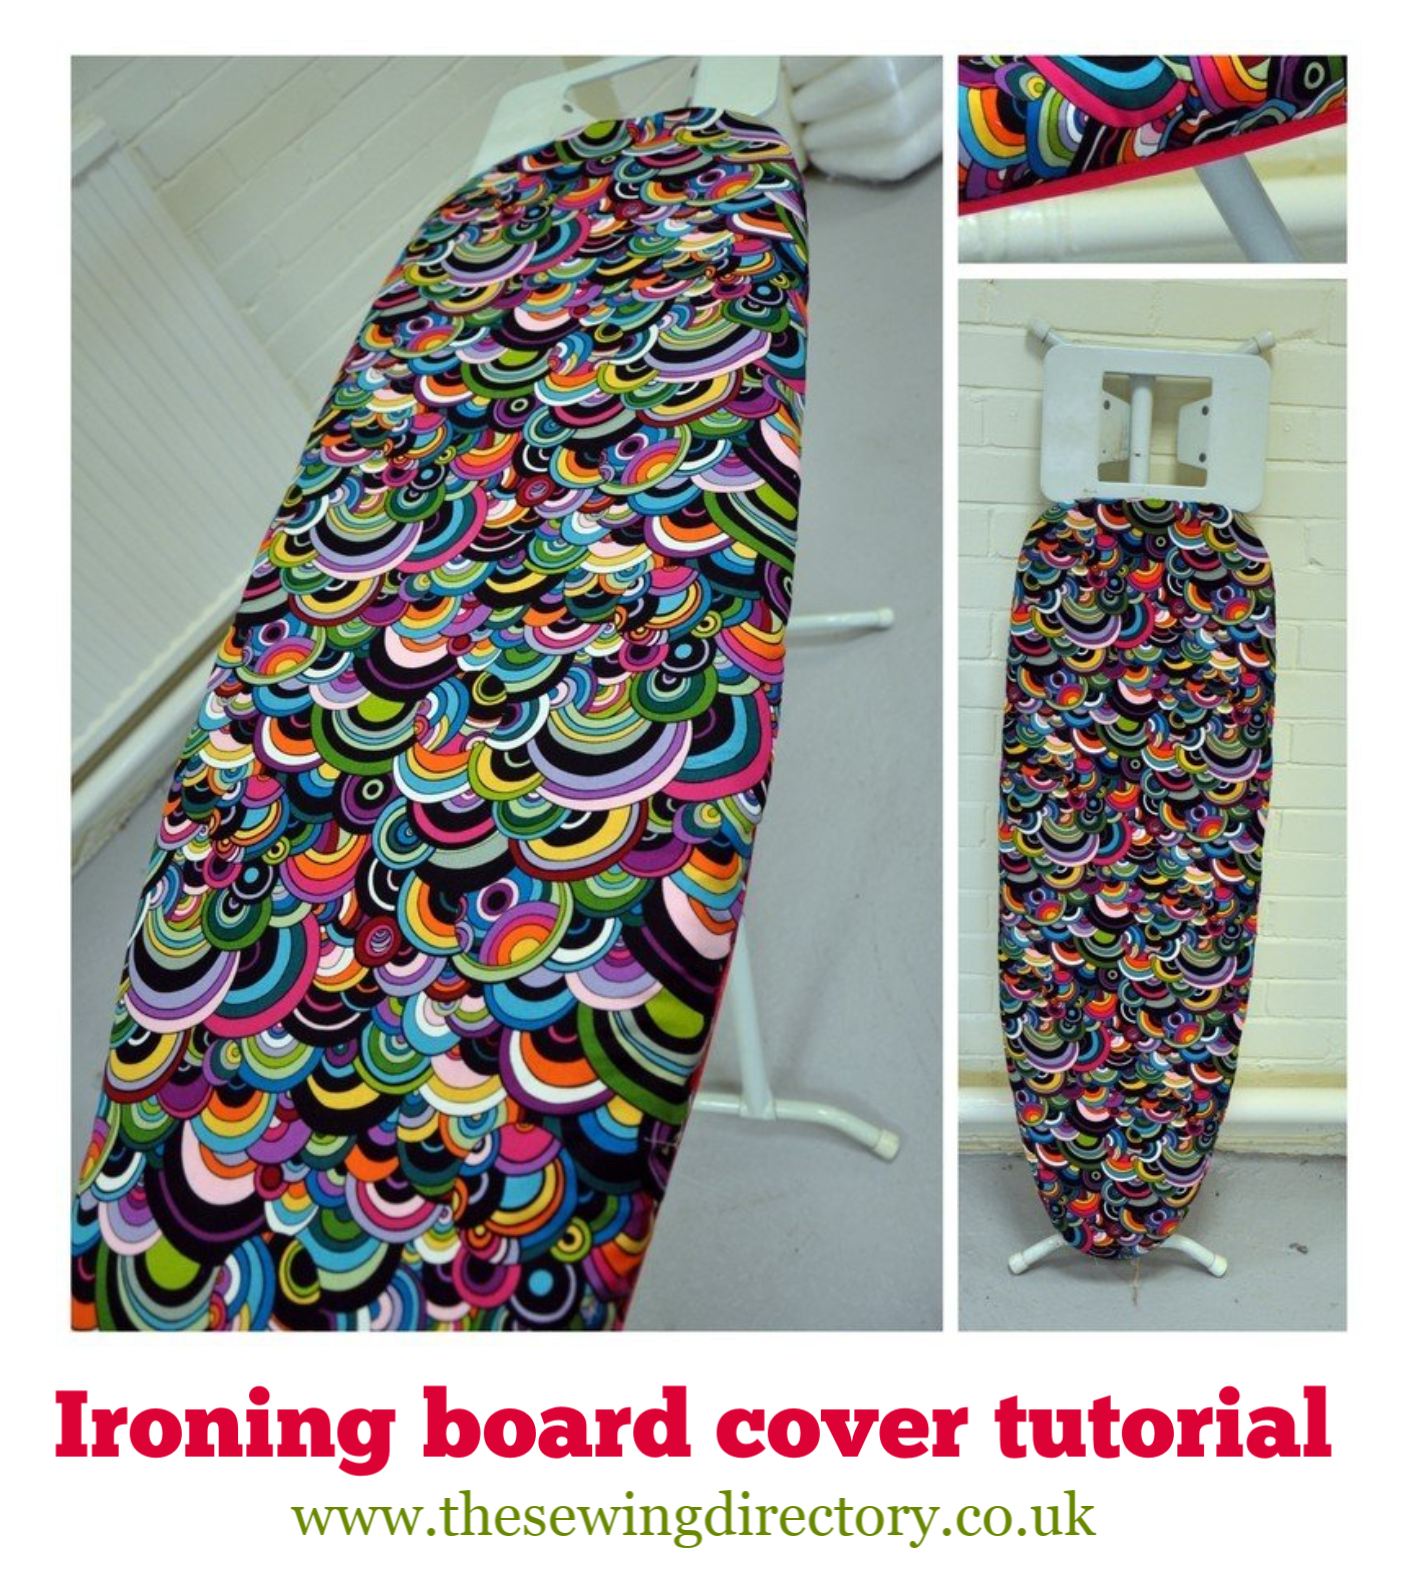 Ironing board cover tutorial | Ironing board covers, Diy ...